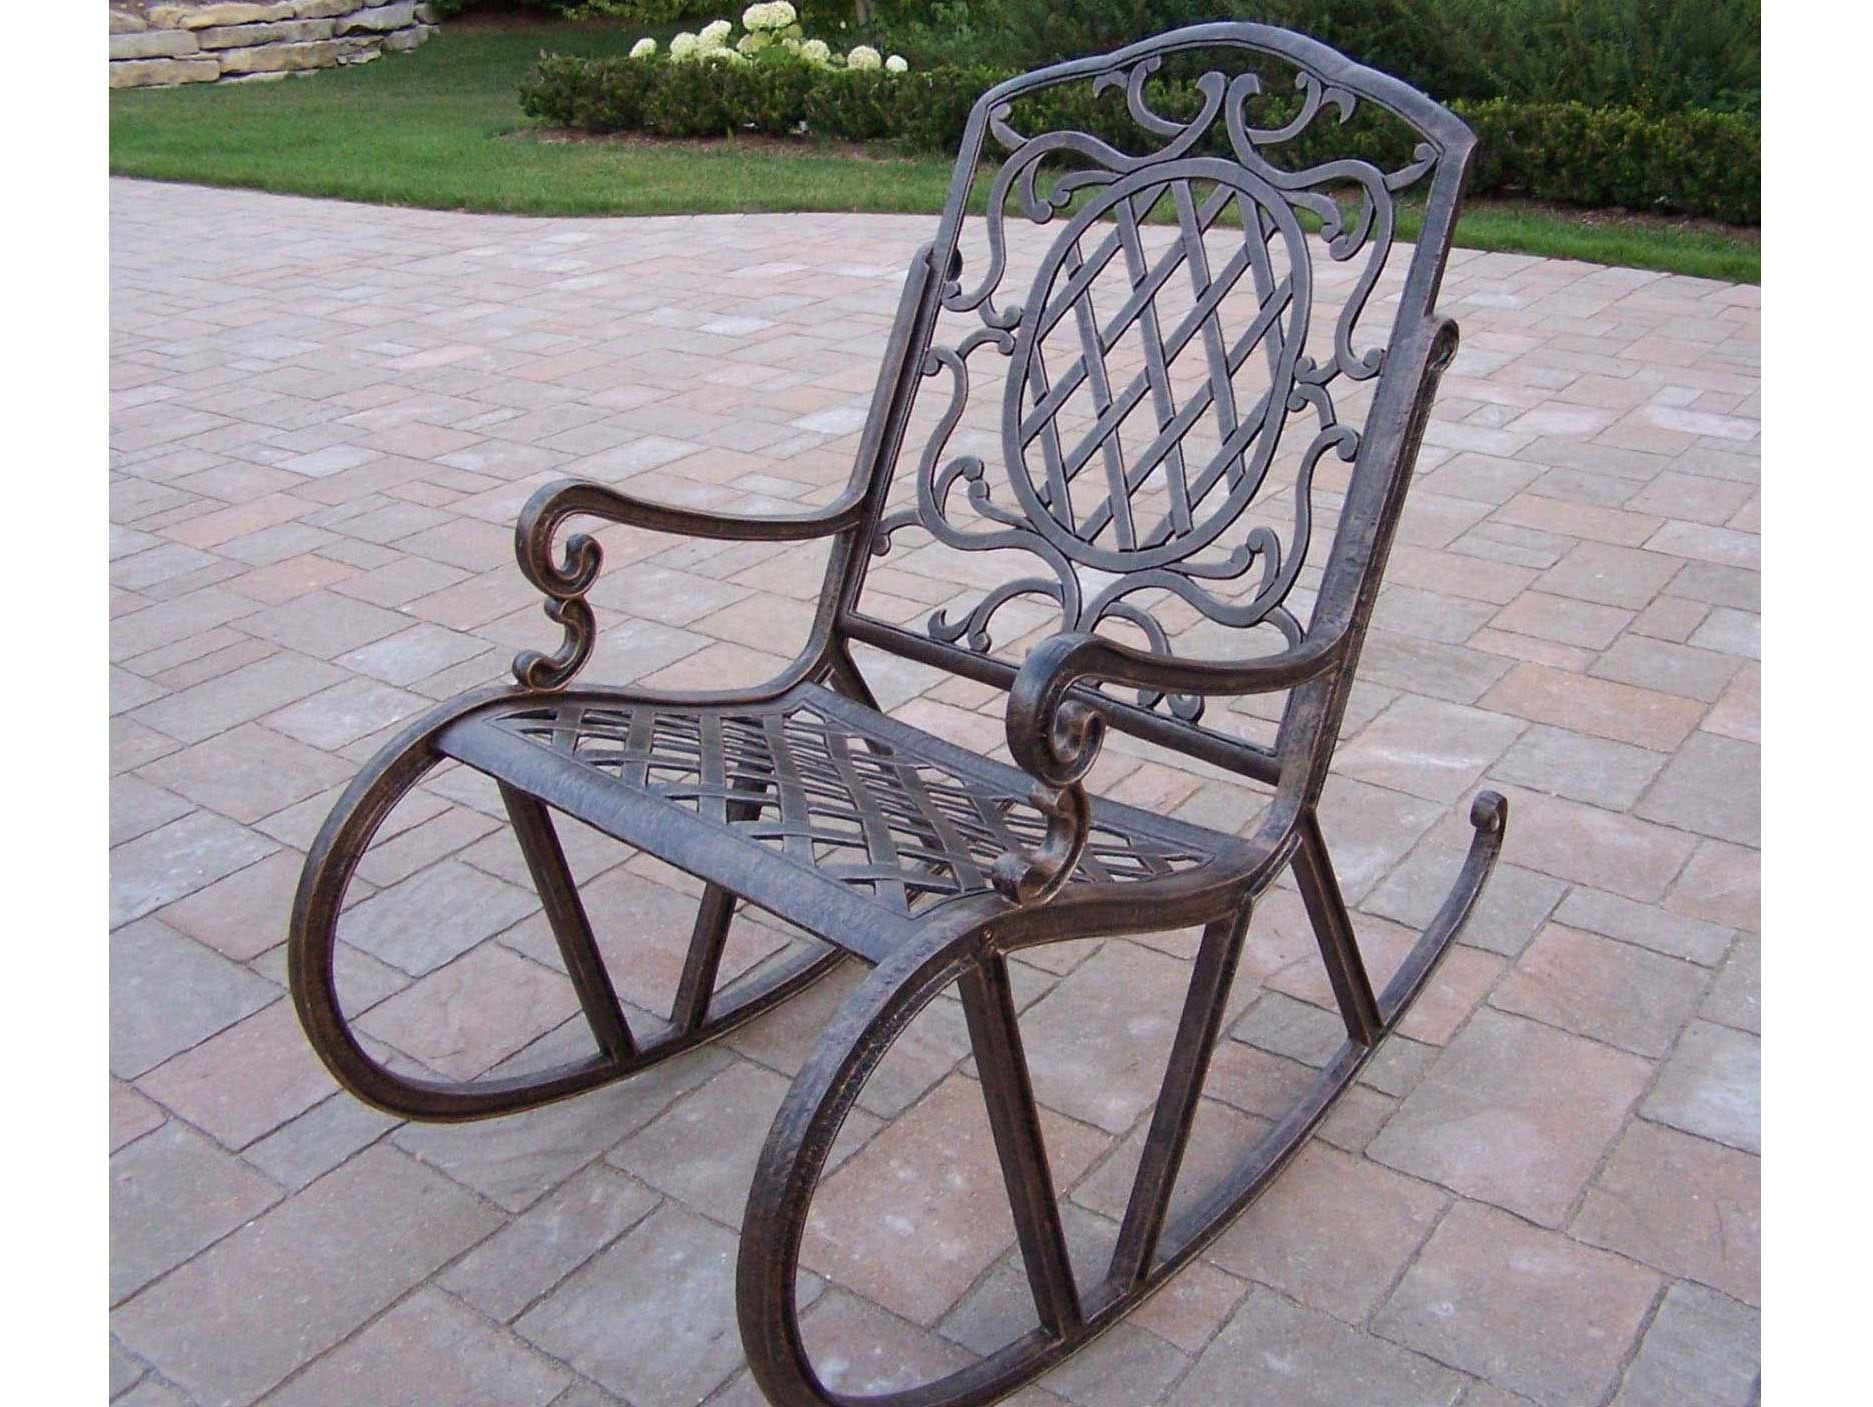 Newest Outdoor Patio Rocking Chairs – Torino2017 With Regard To Outdoor Patio Metal Rocking Chairs (View 9 of 15)